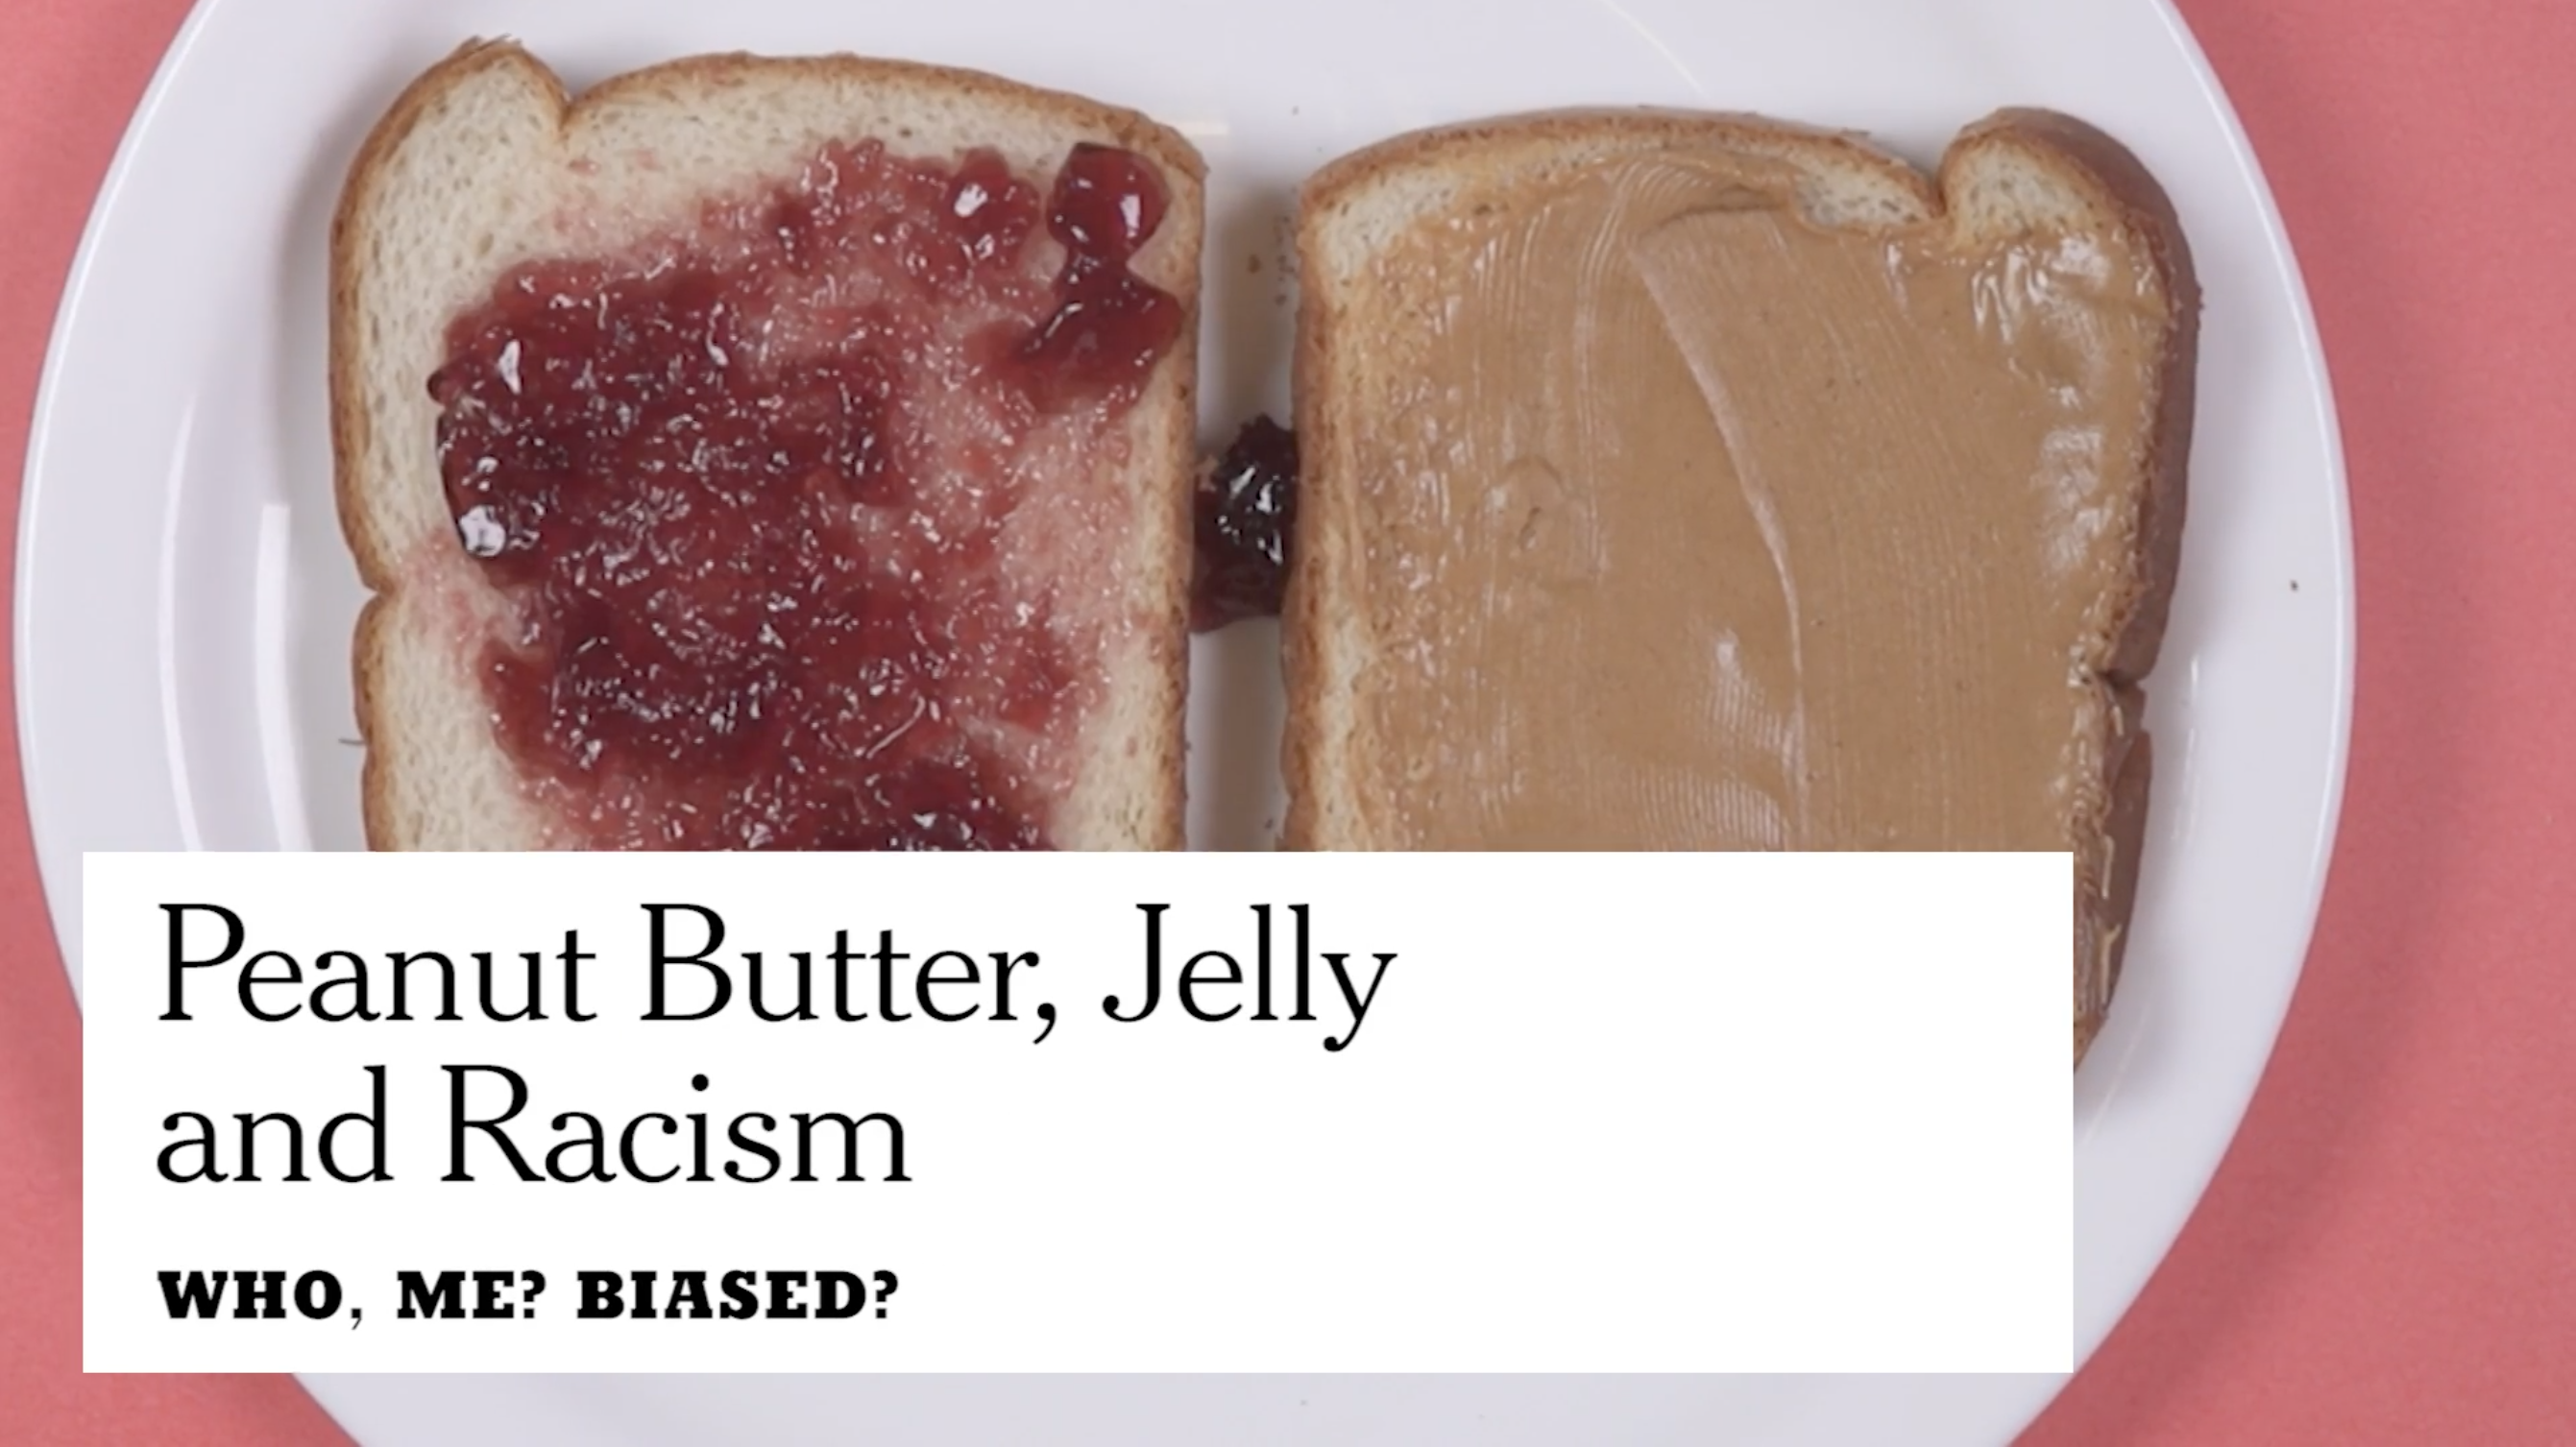 New York Times Video: Peanut Butter, Jelly and Racism